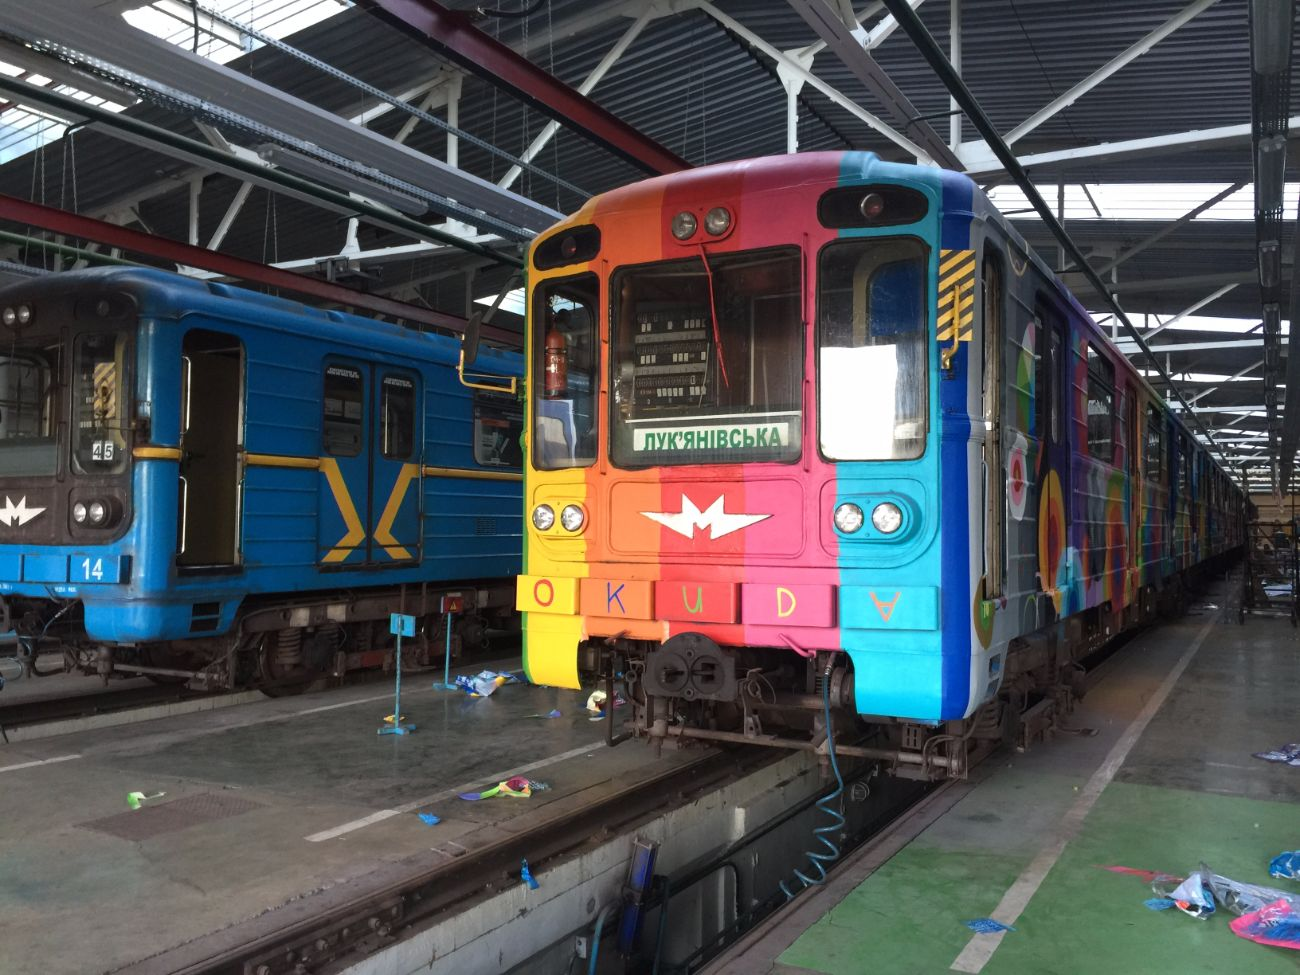 okuda-san-miguels-5-car-train-in-kiev-ukraine-thevandallist-14